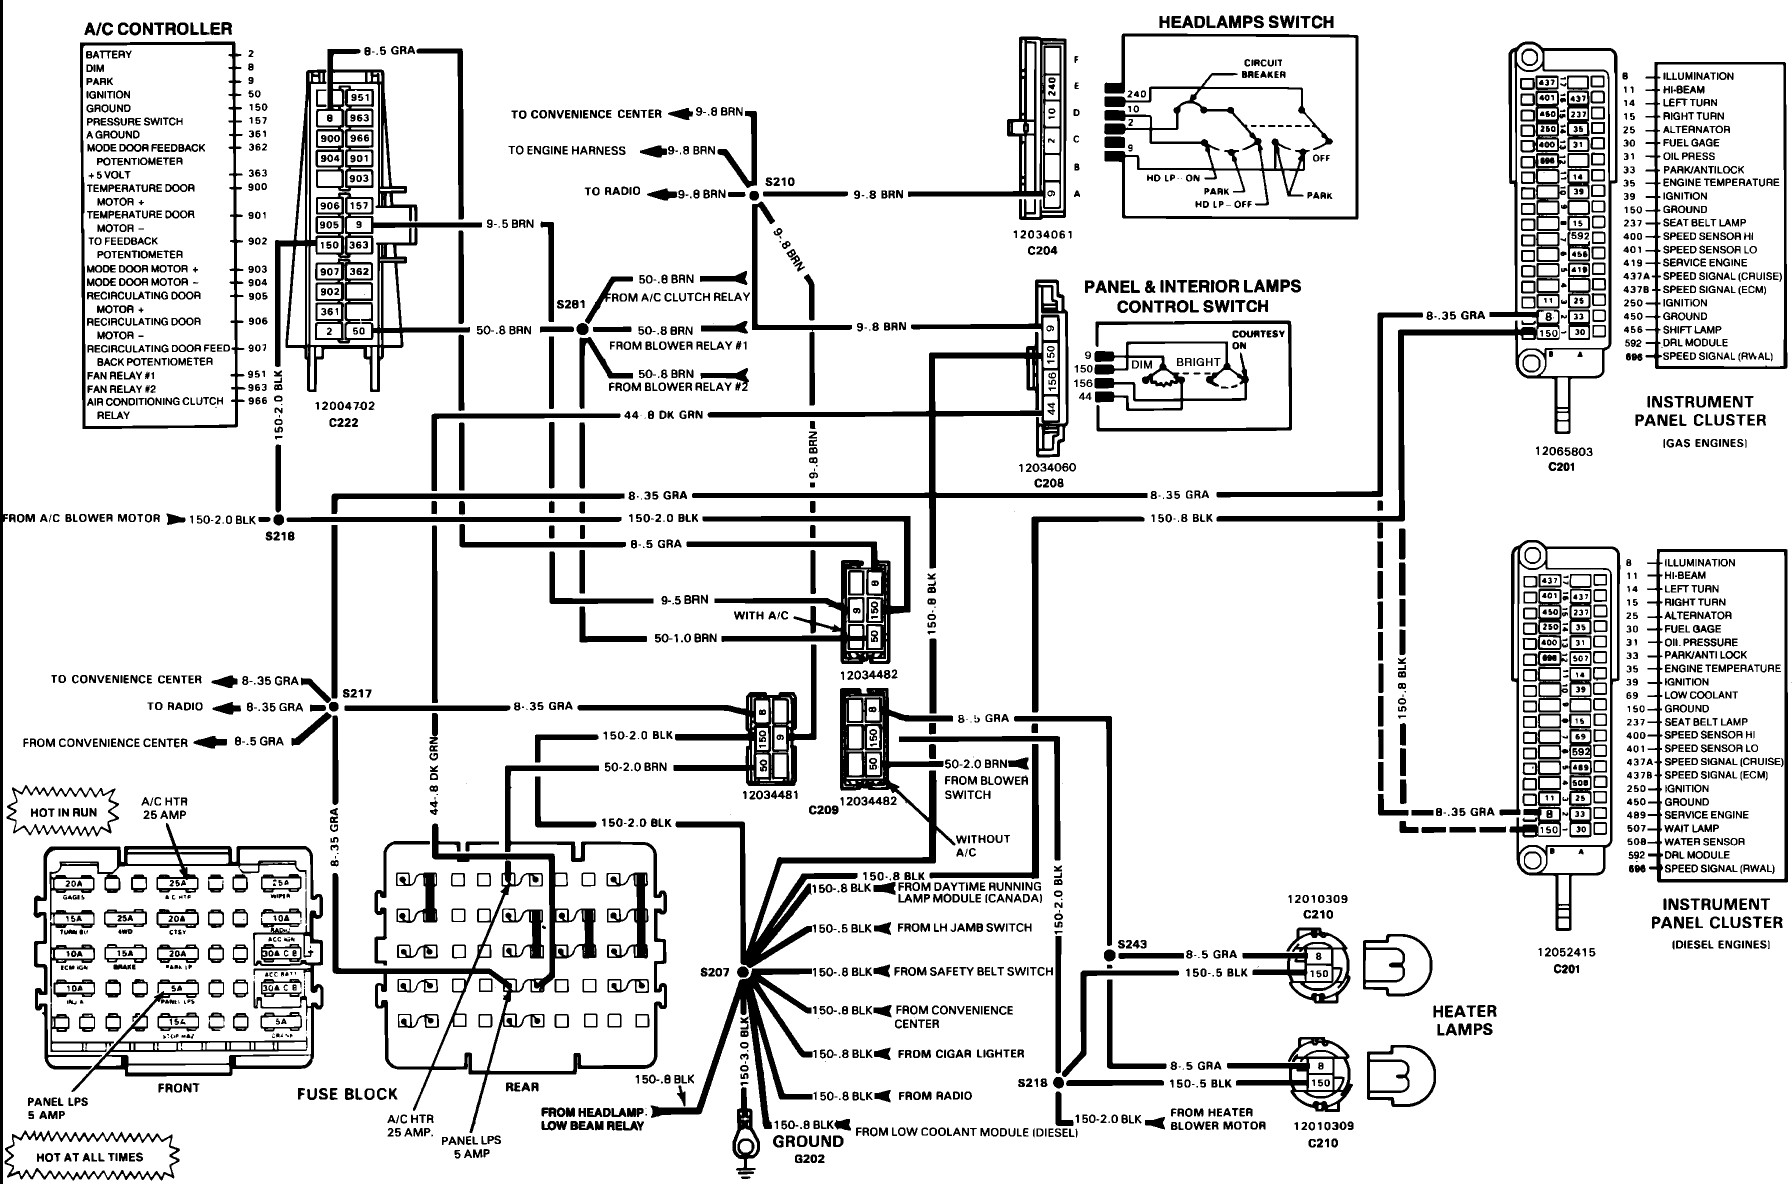 DOWNLOAD SCHEMA 1986 Chevrolet K10 Wiring Diagram Full ...